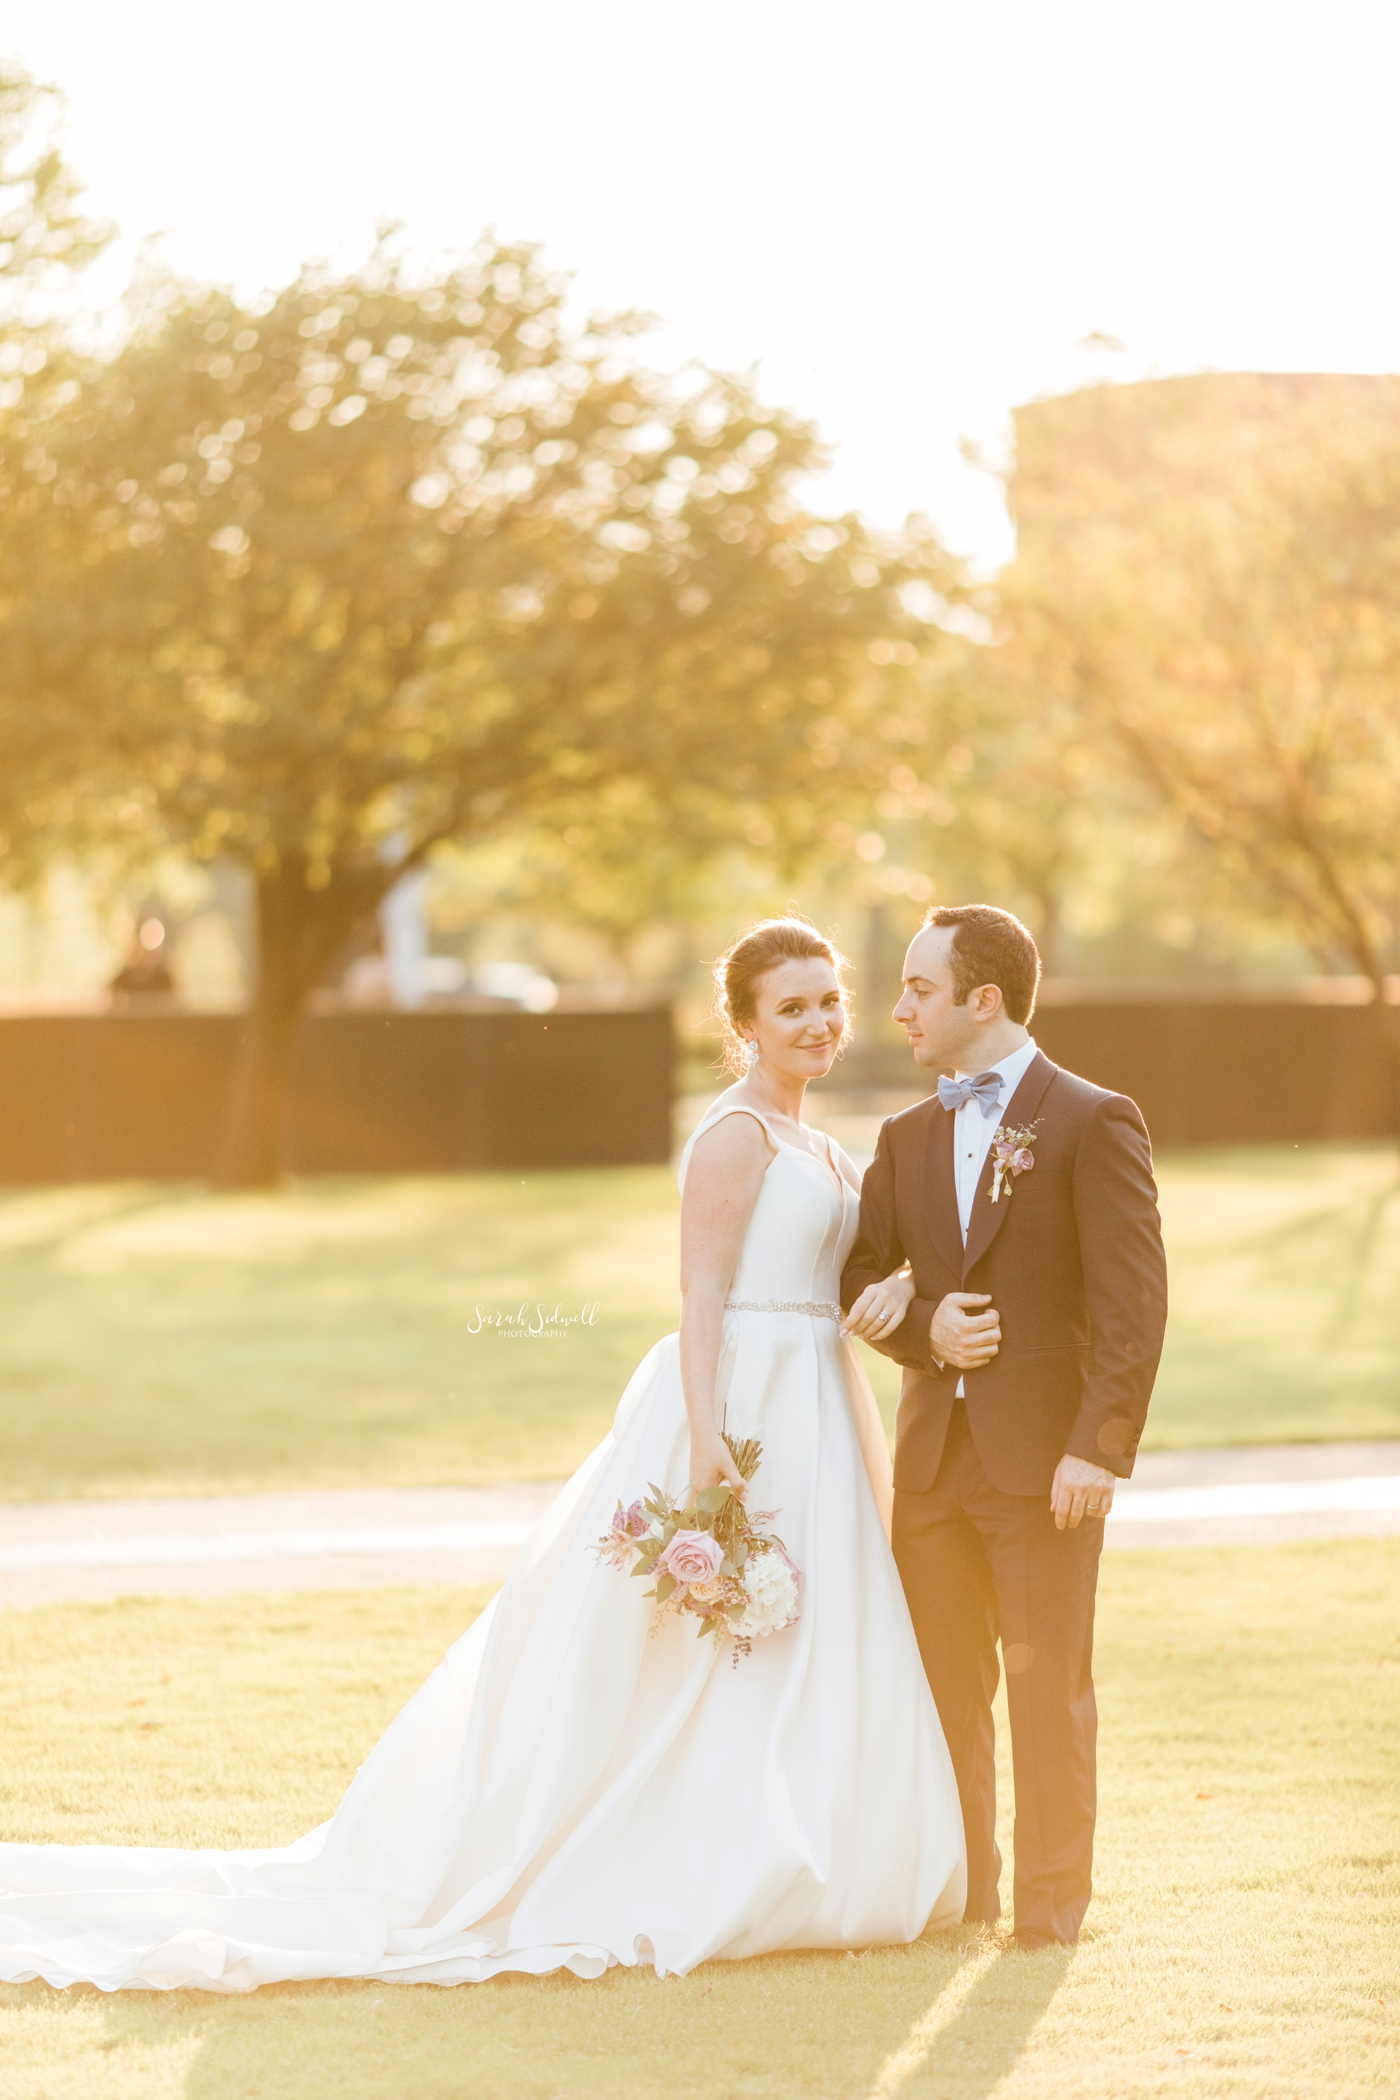 Nashville Wedding at The Tennessee State Museum | Meg & Paul